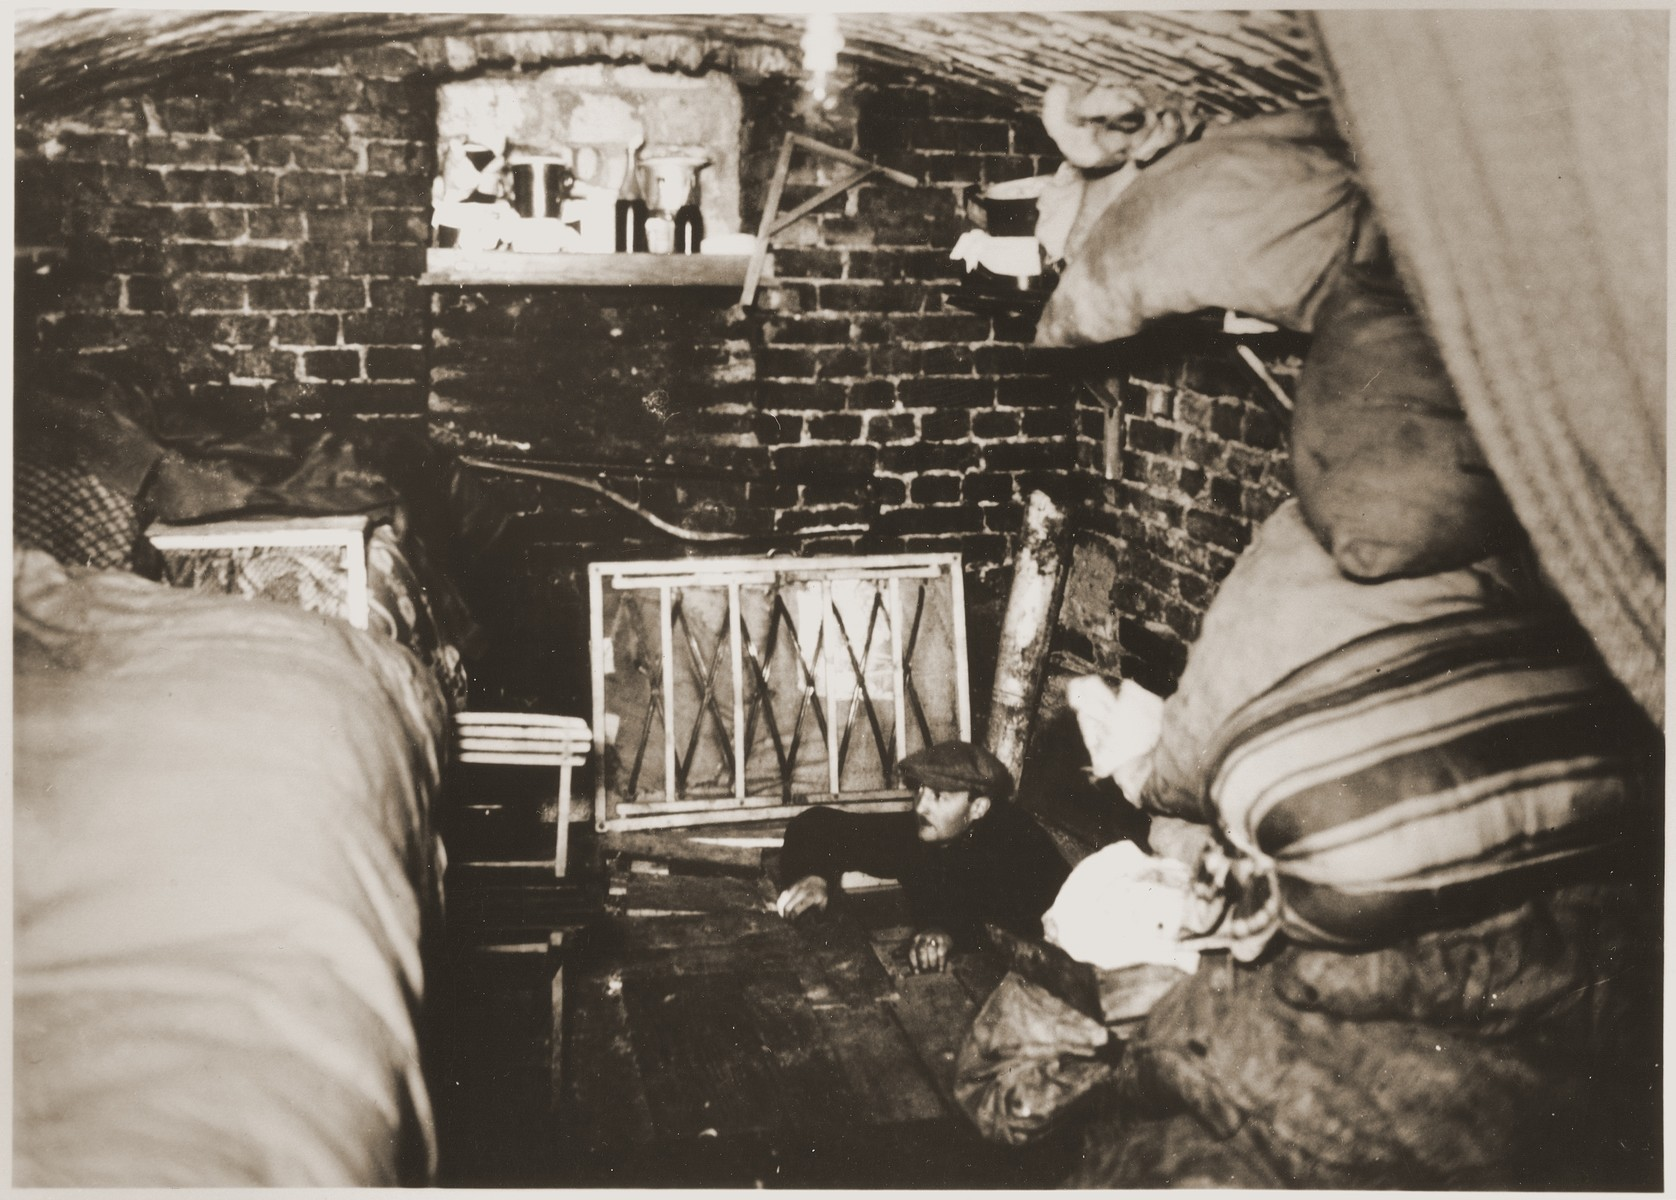 A Jewish man emerges from his hiding place below the floor of a bunker prepared for the Warsaw ghetto uprising.